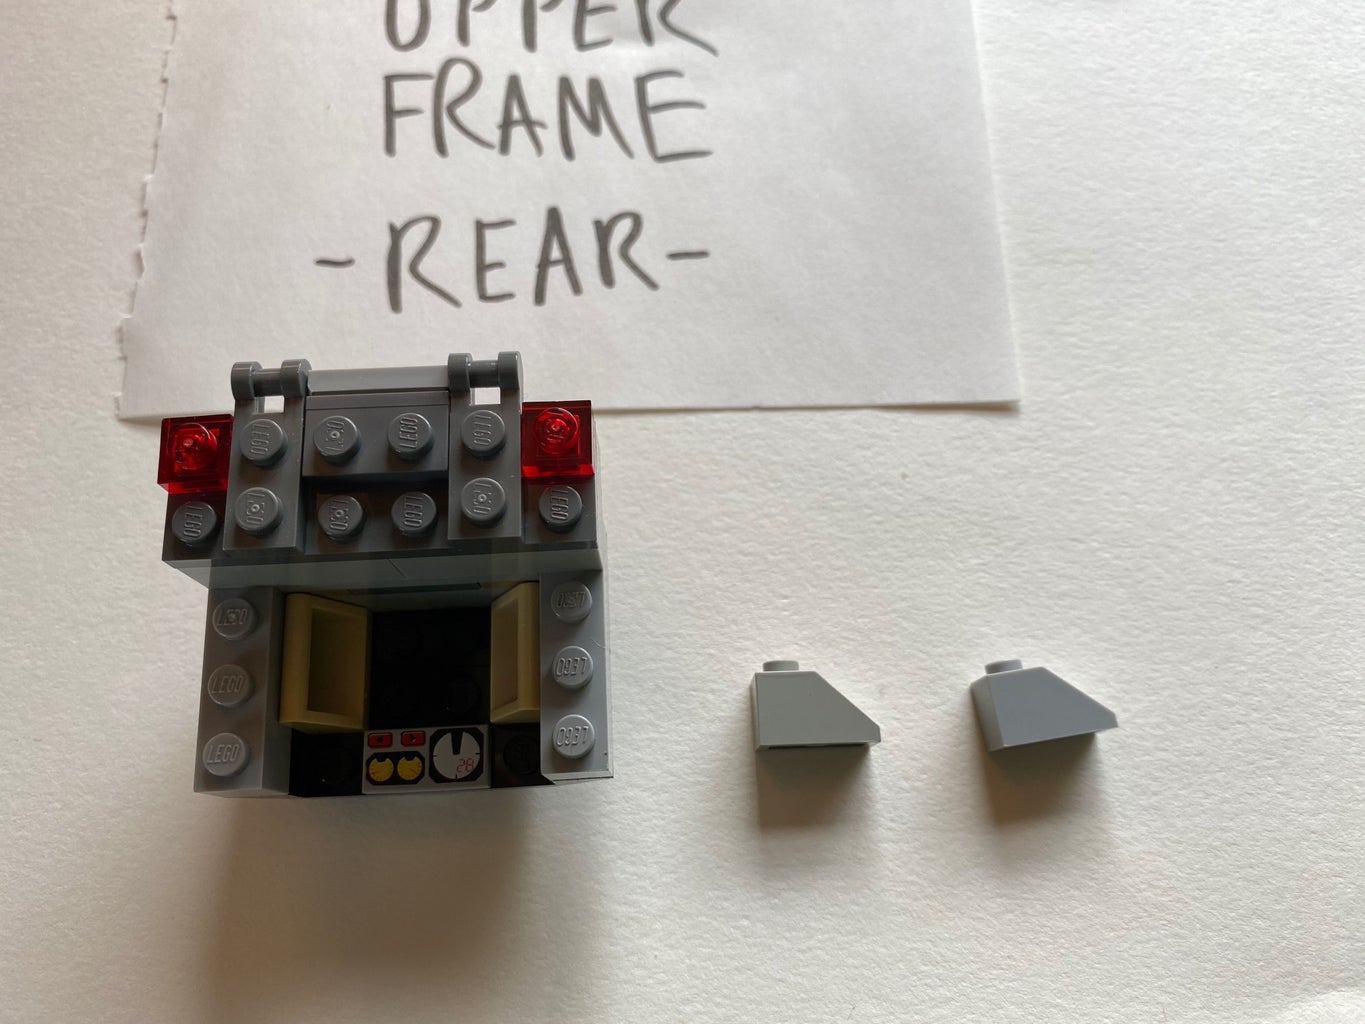 Build the Upper Frame (Rear Section)